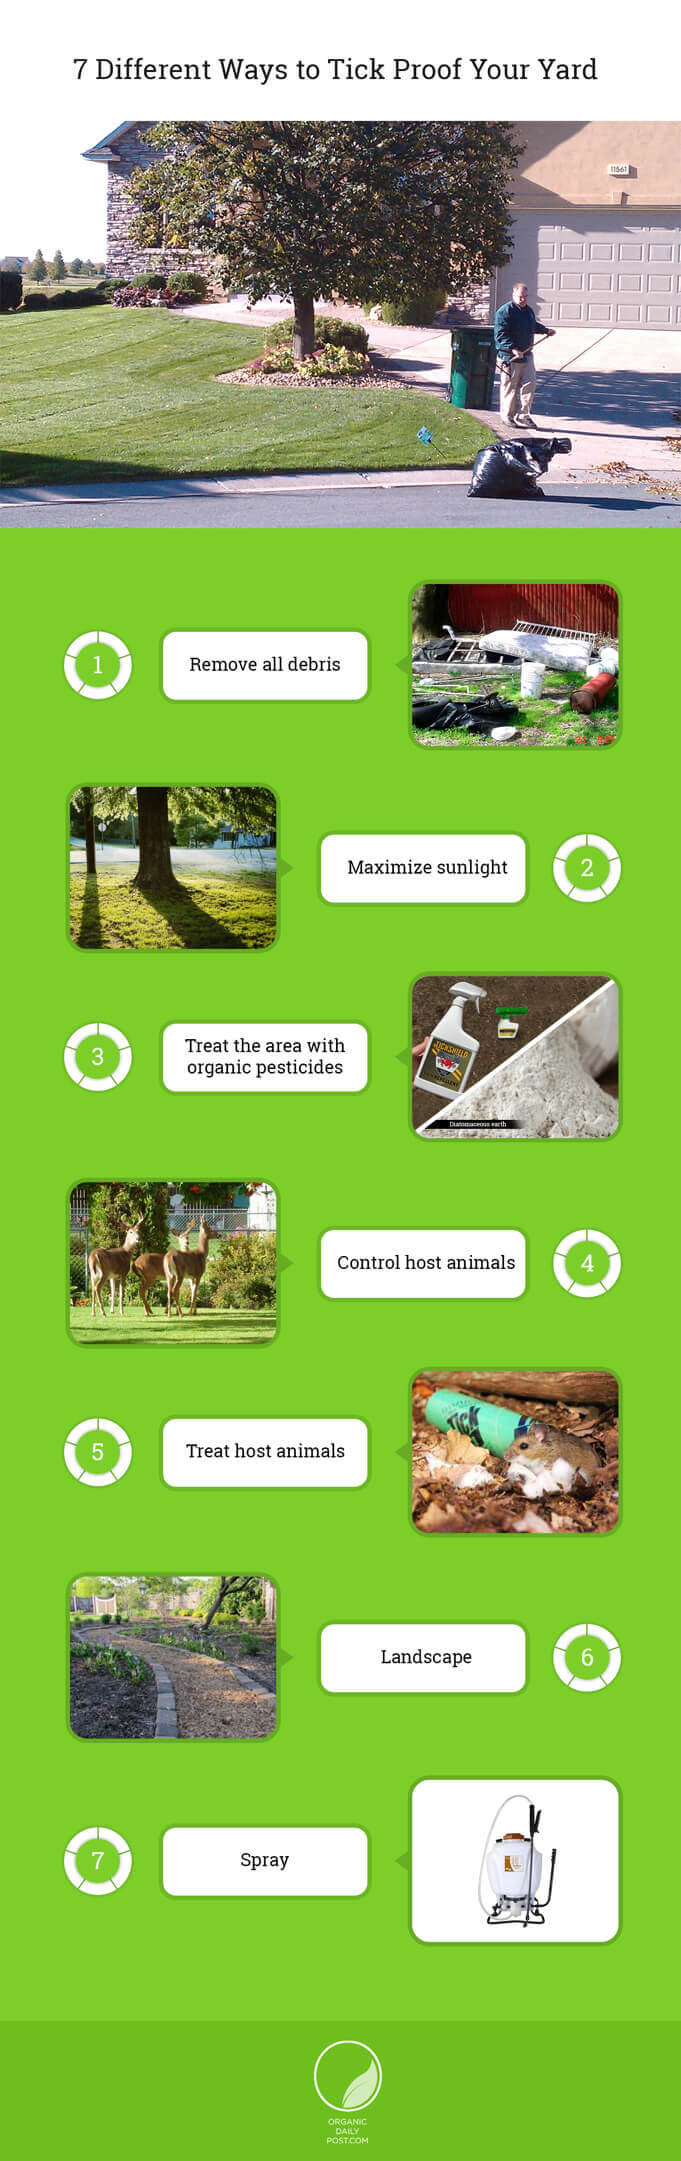 Tick-proof-your-yard-infographic